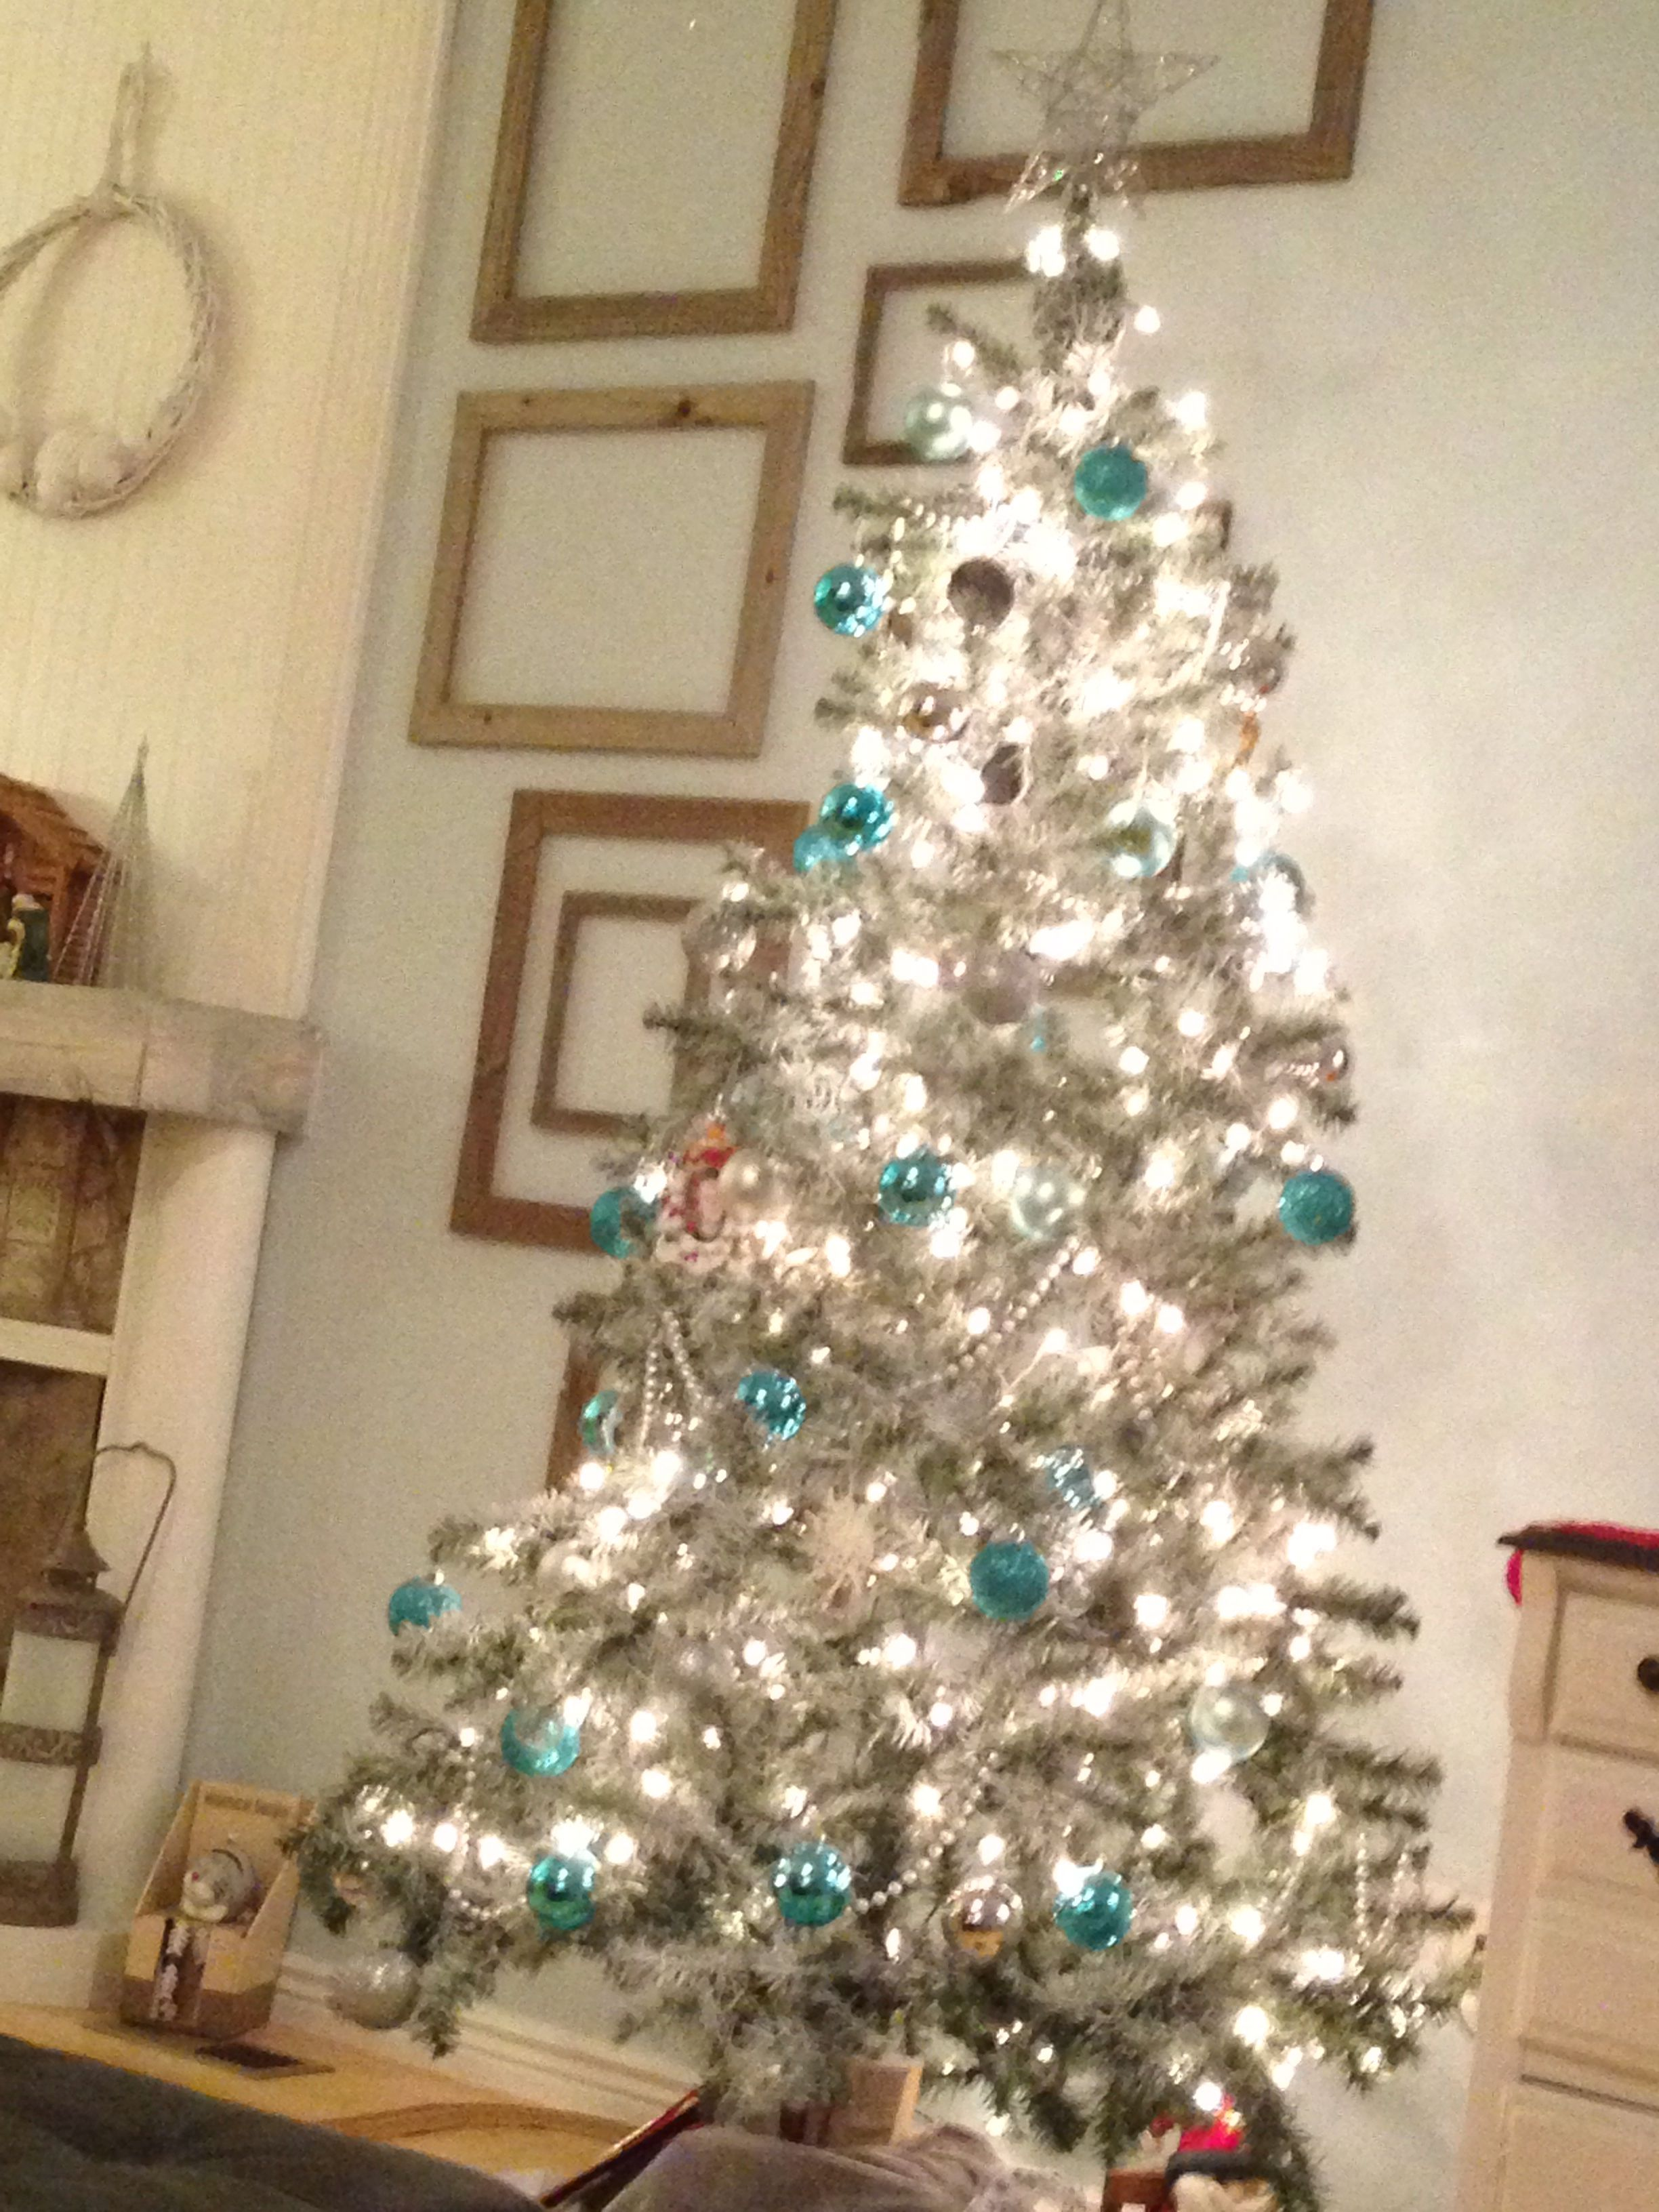 My green turned white Christmas tree!